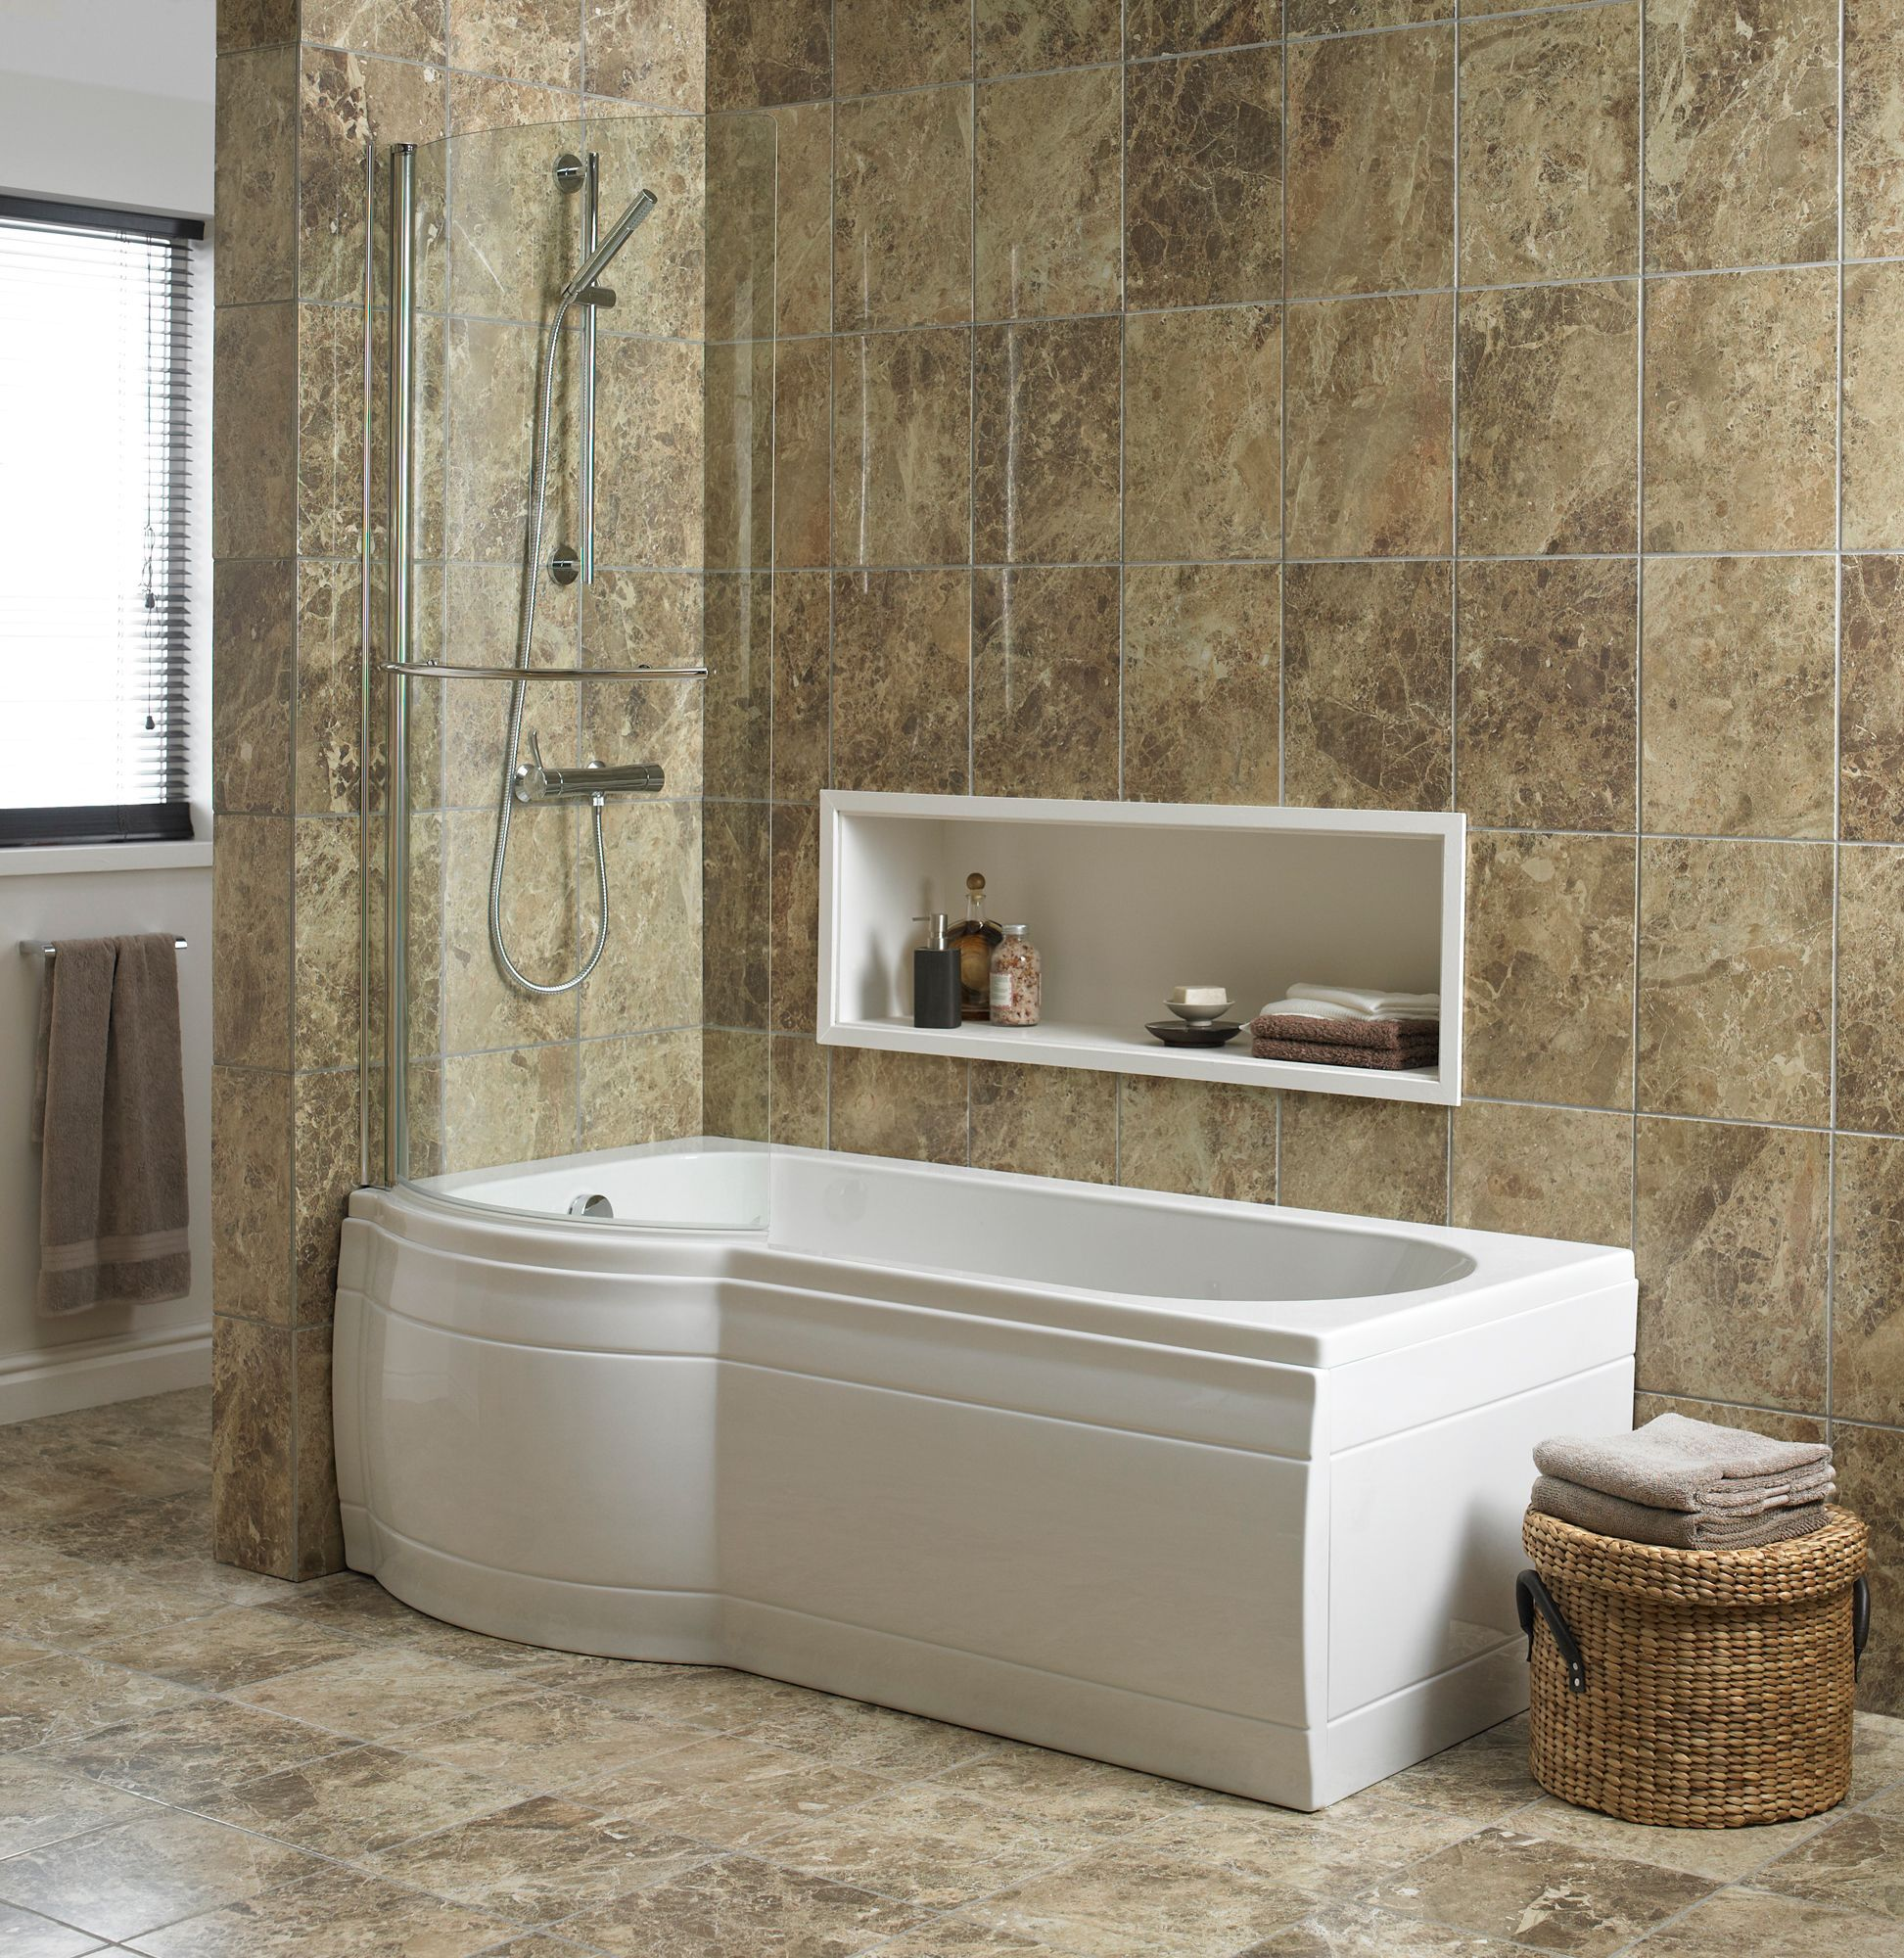 Cooke lewis adelphi curved bath screen departments diy at b q - Bathtub in shower ...